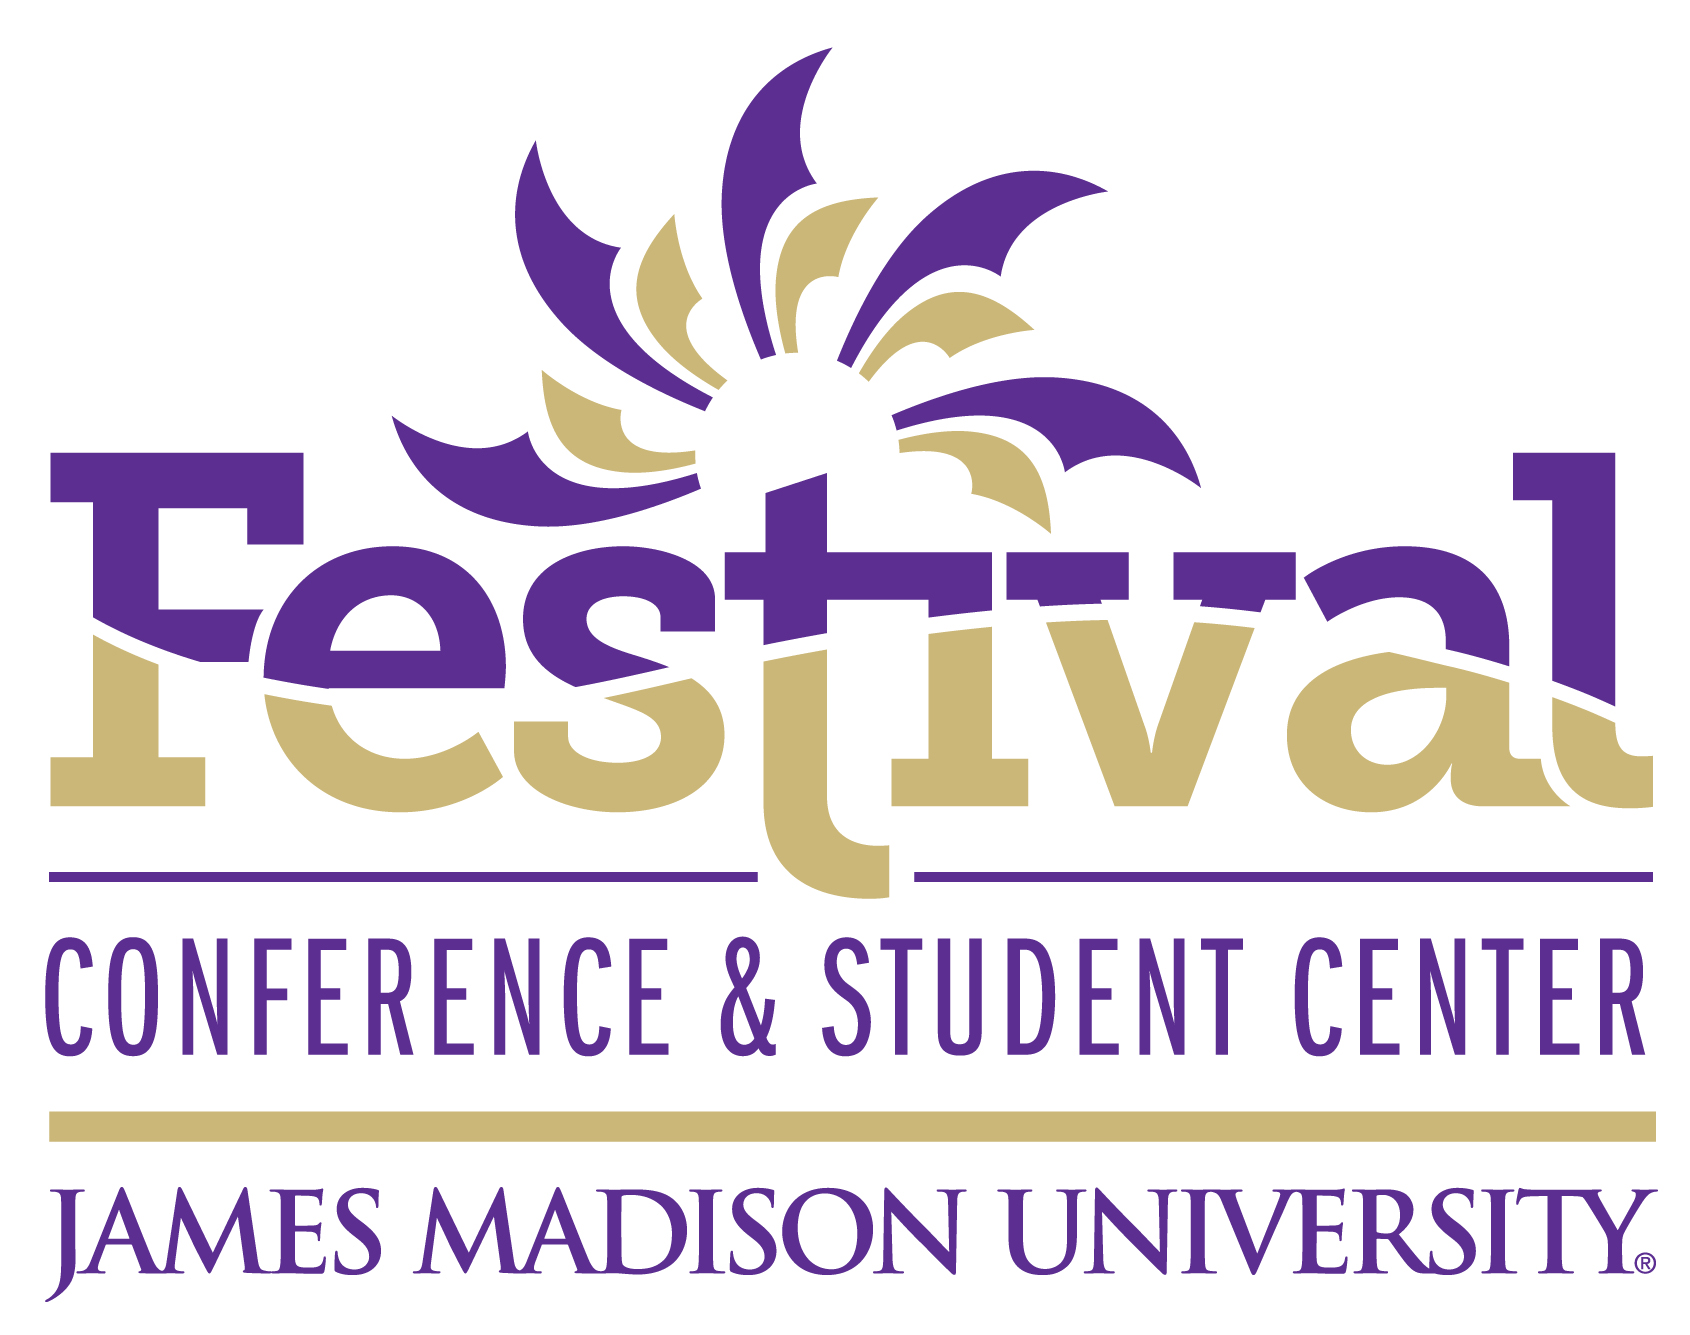 Image of the Festival Conference and Student Center